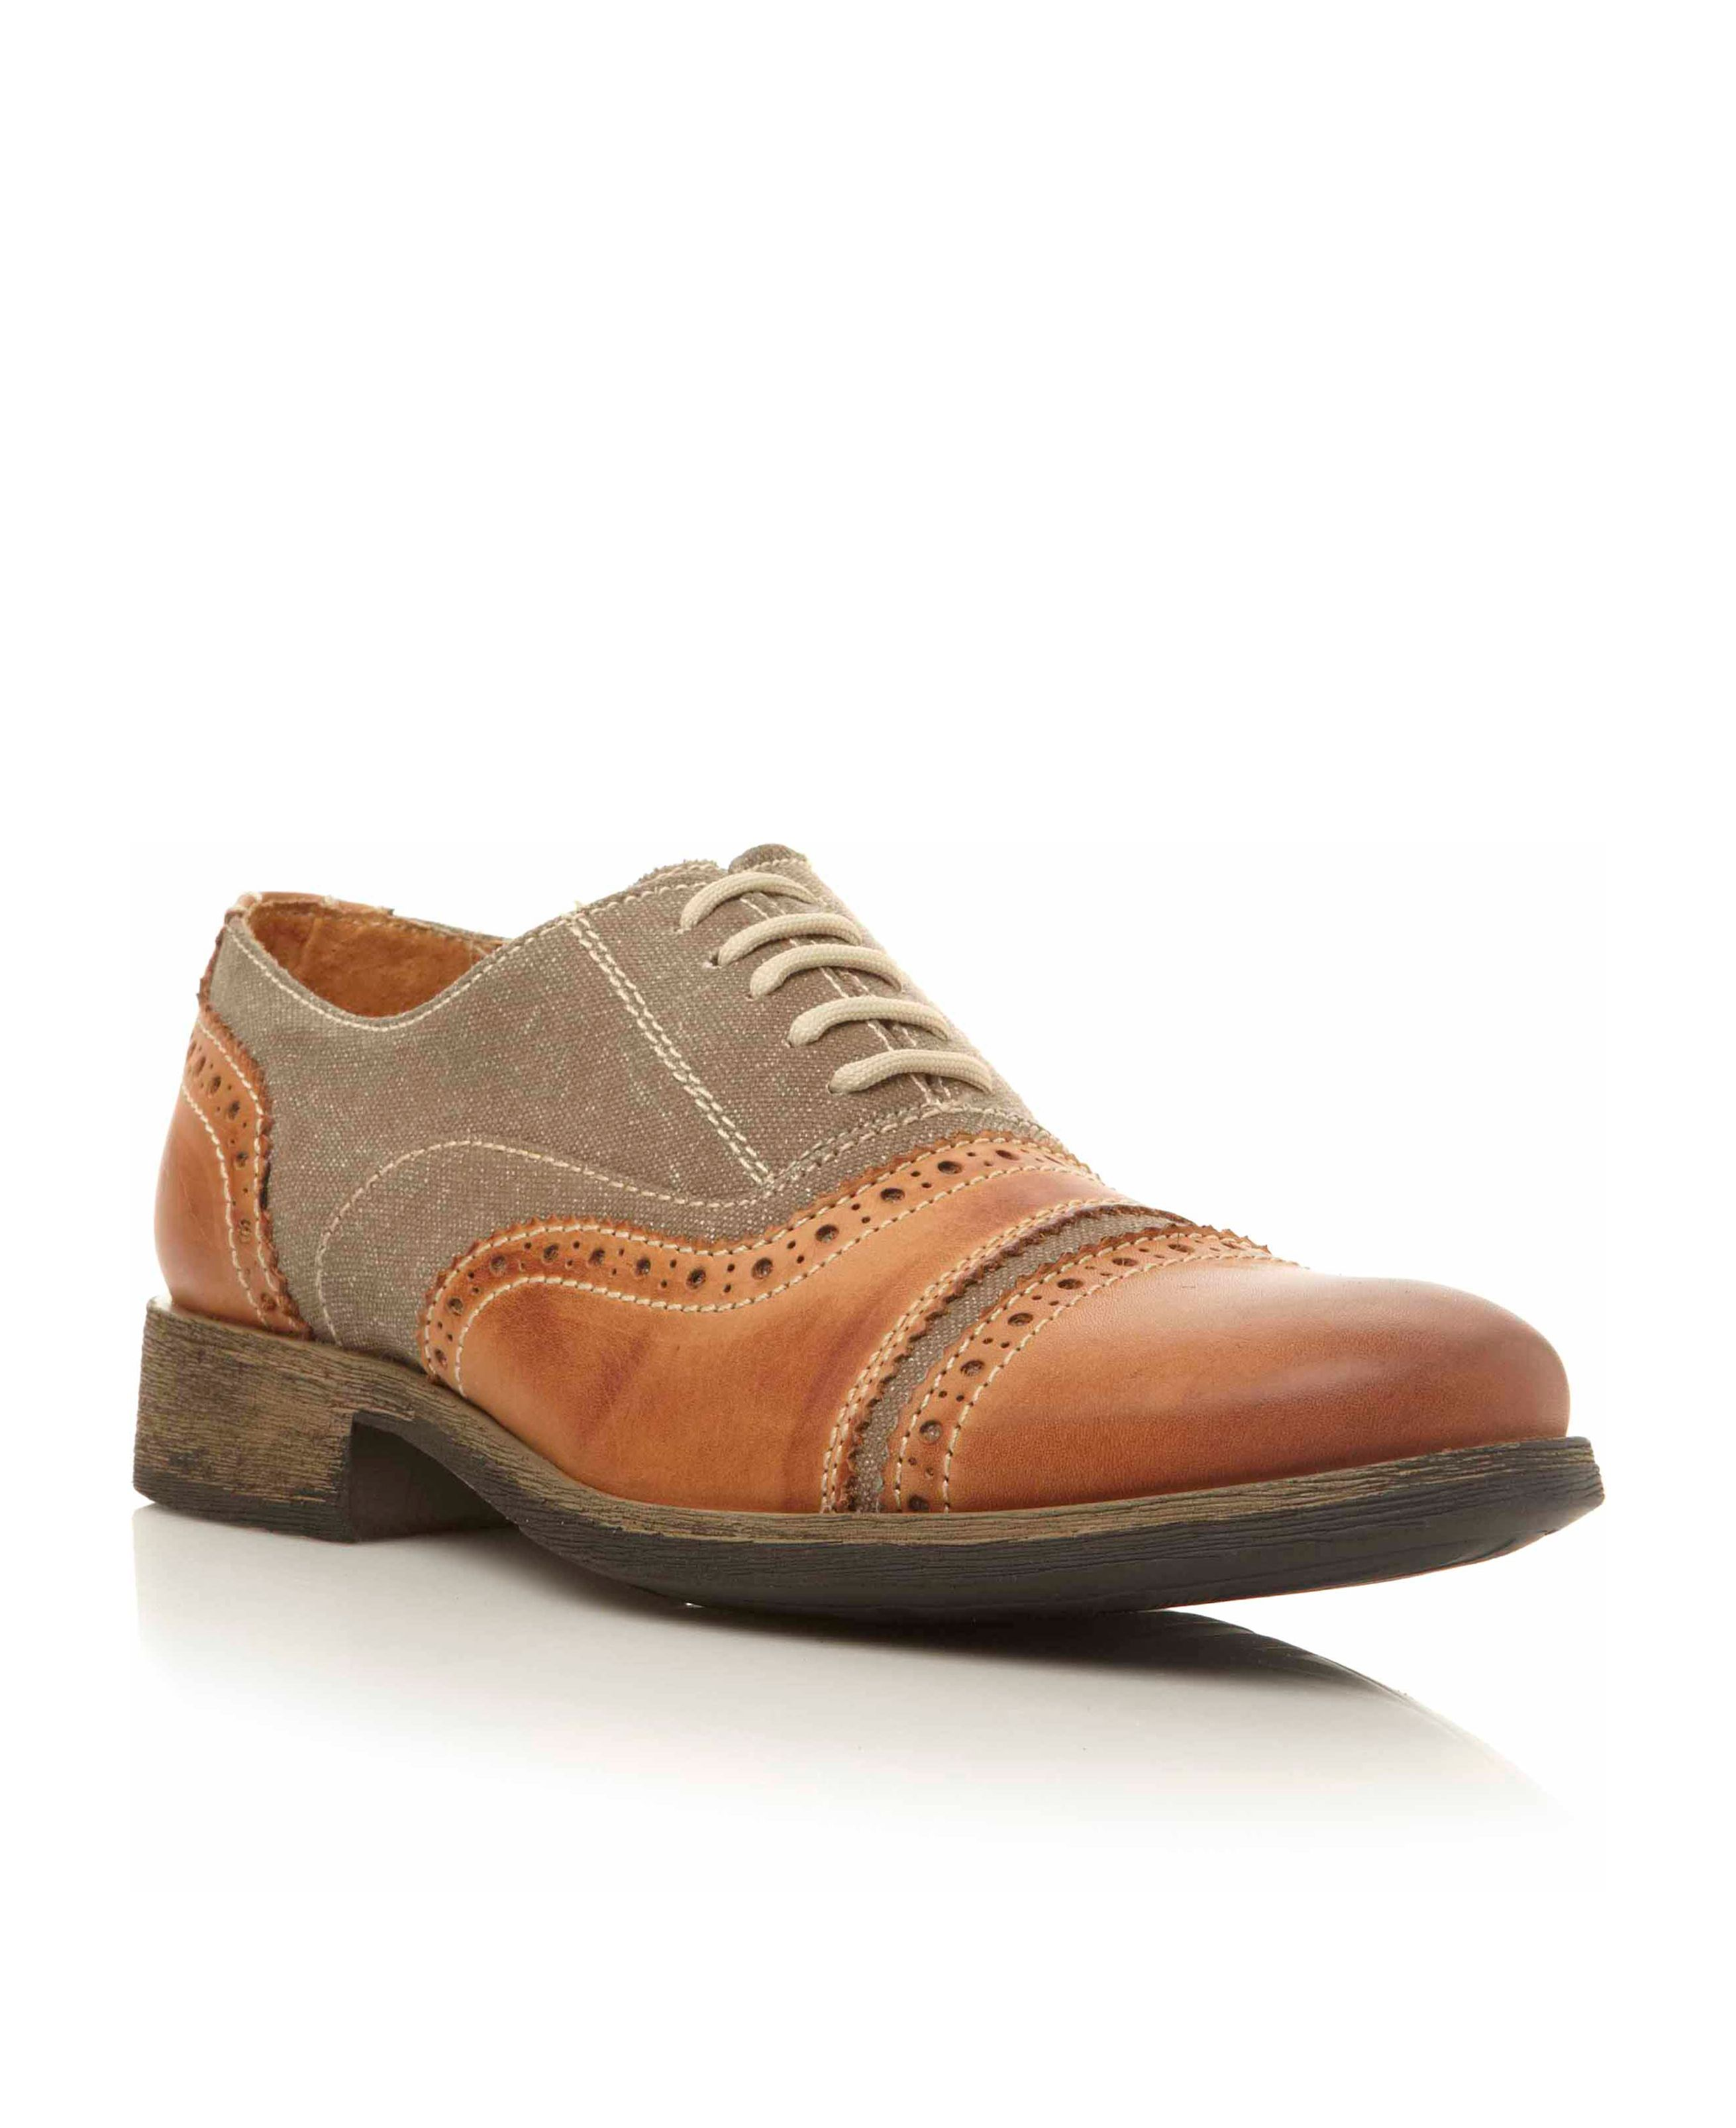 Cabal lace up canvas/textile brogues